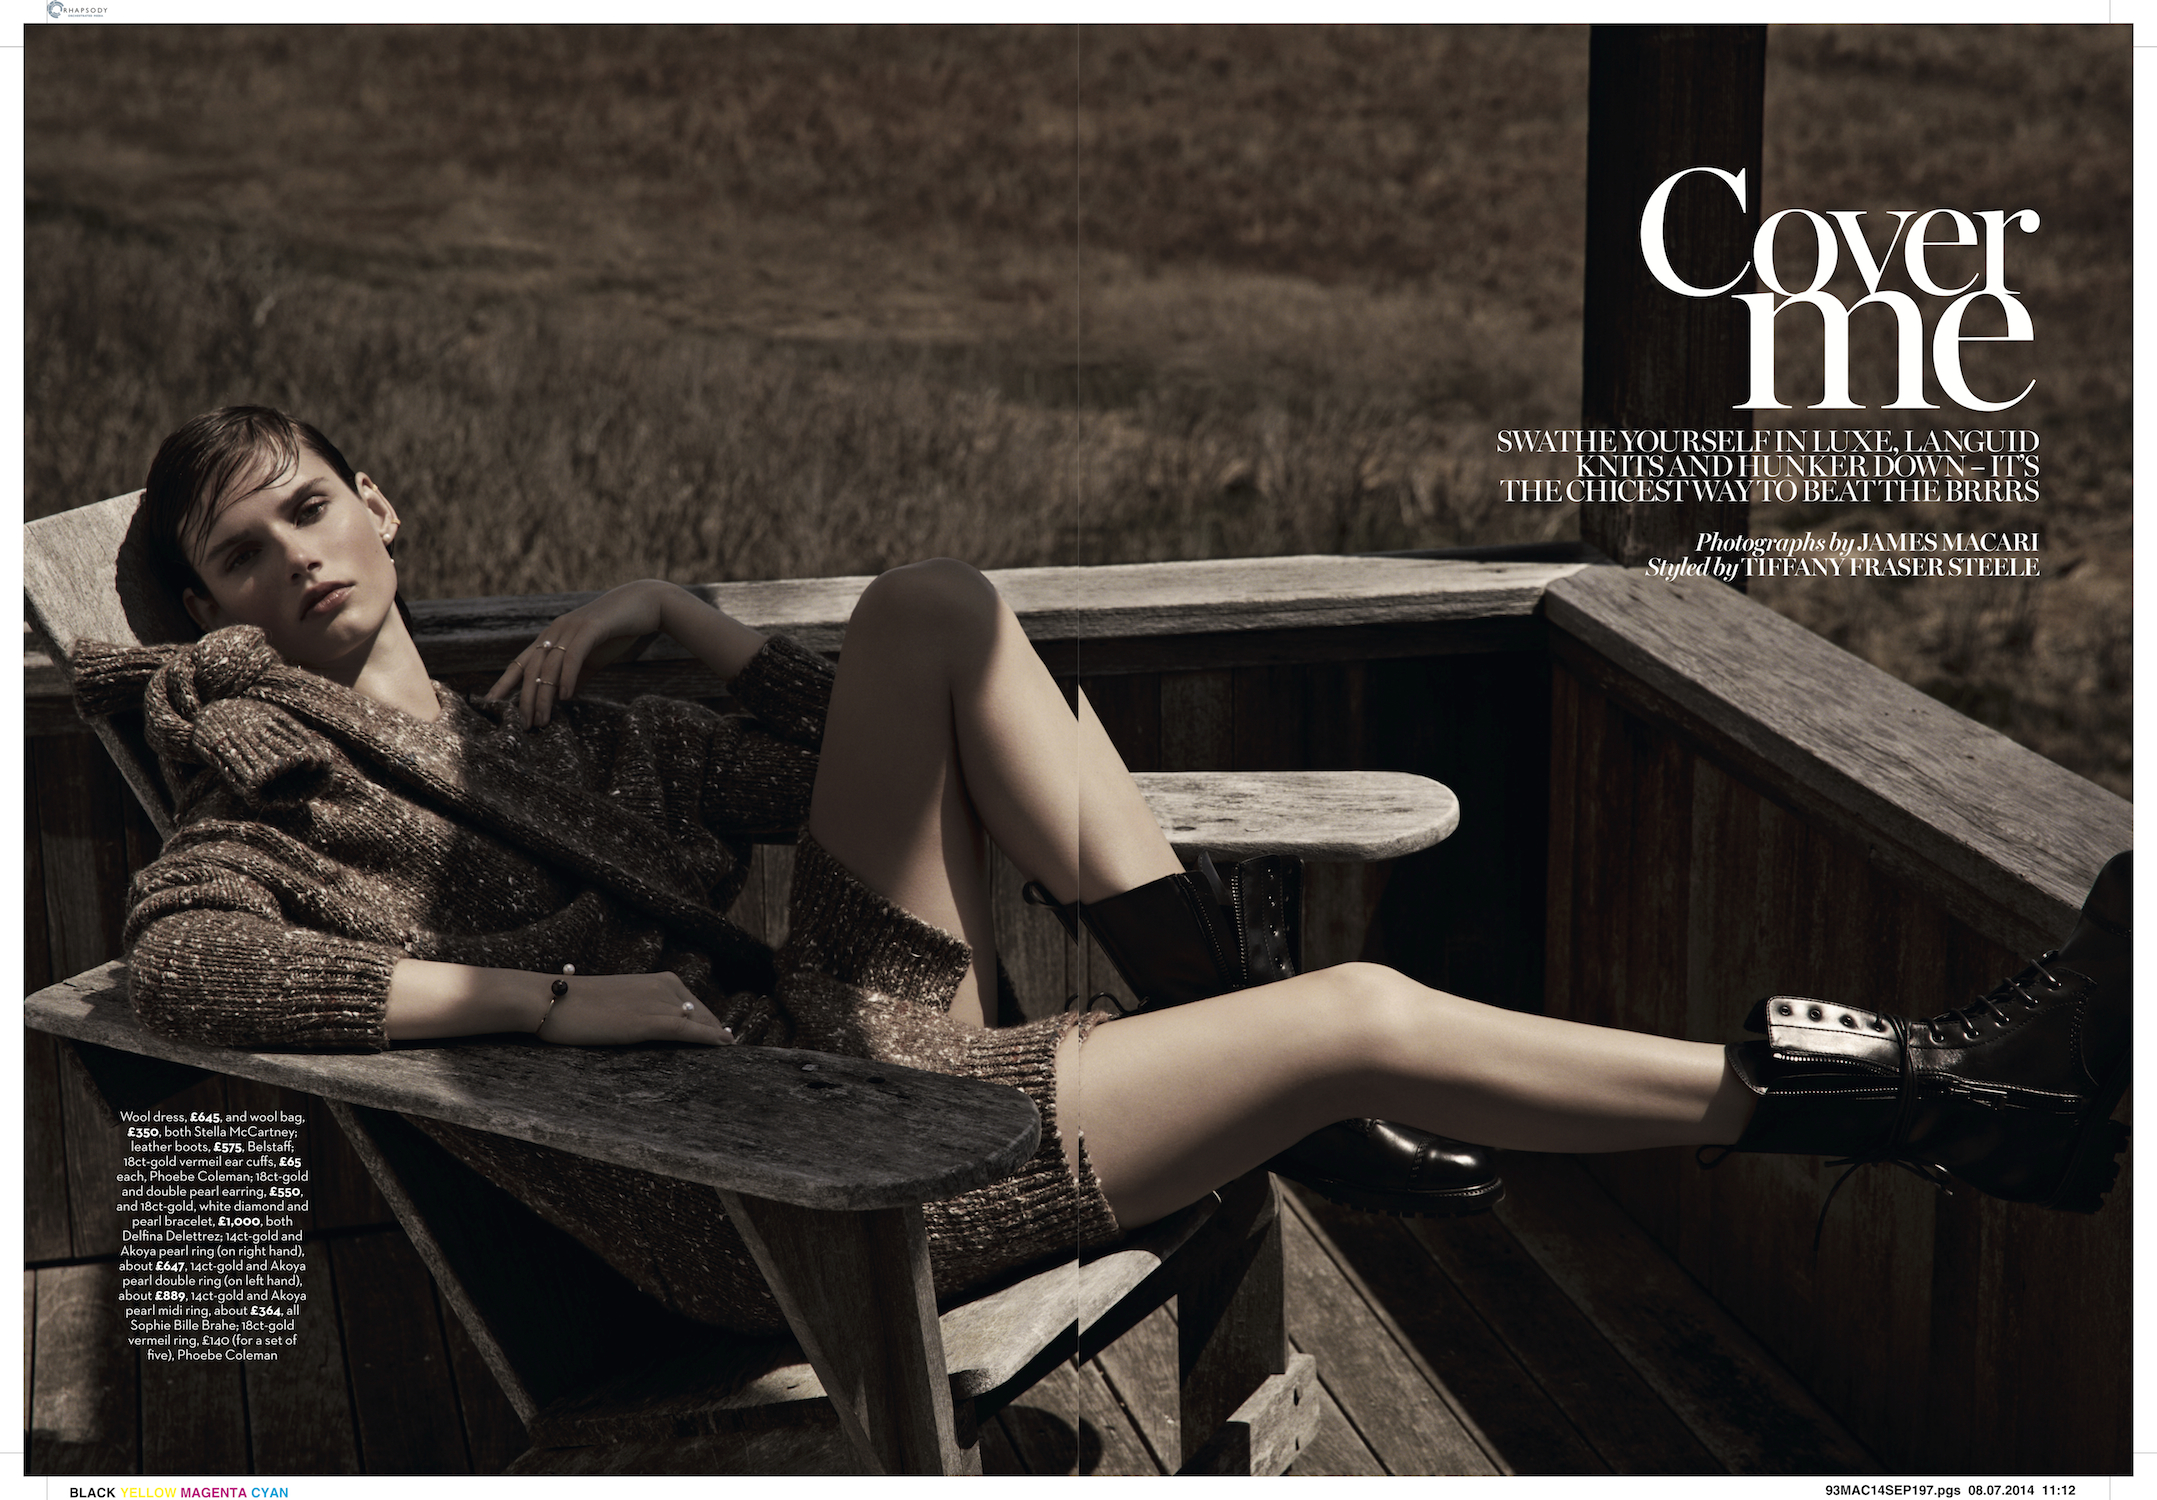 marie claire uk photo shoot by james macari and county fair productions in the hamptons 1